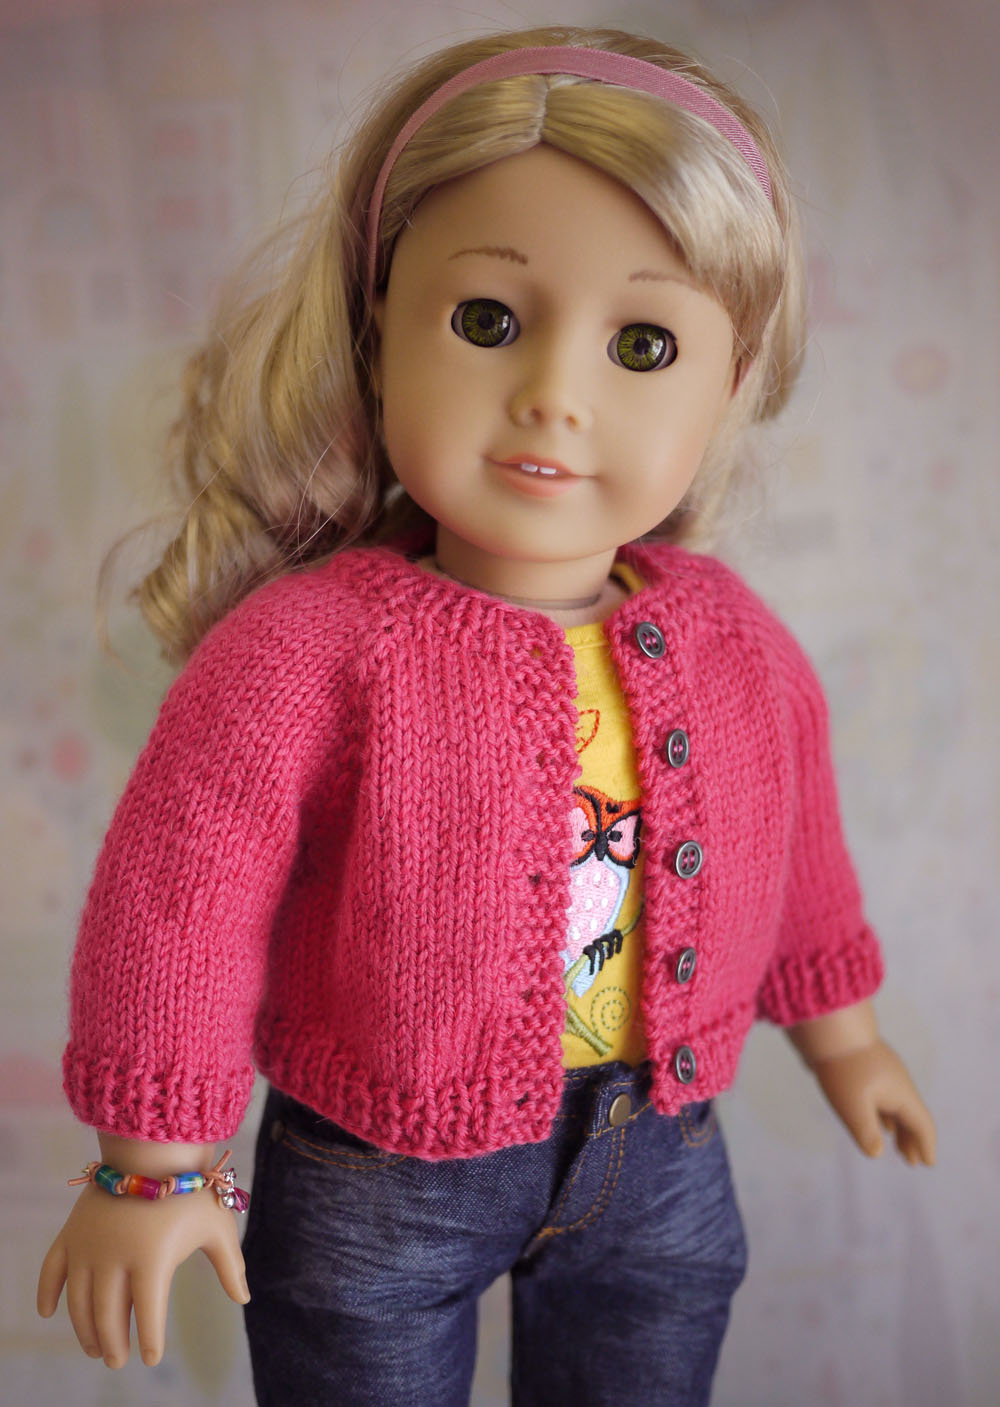 Free Patterns For Knitted Dolls : American Girl Doll Cardigan Sweater Knitting Pattern ...